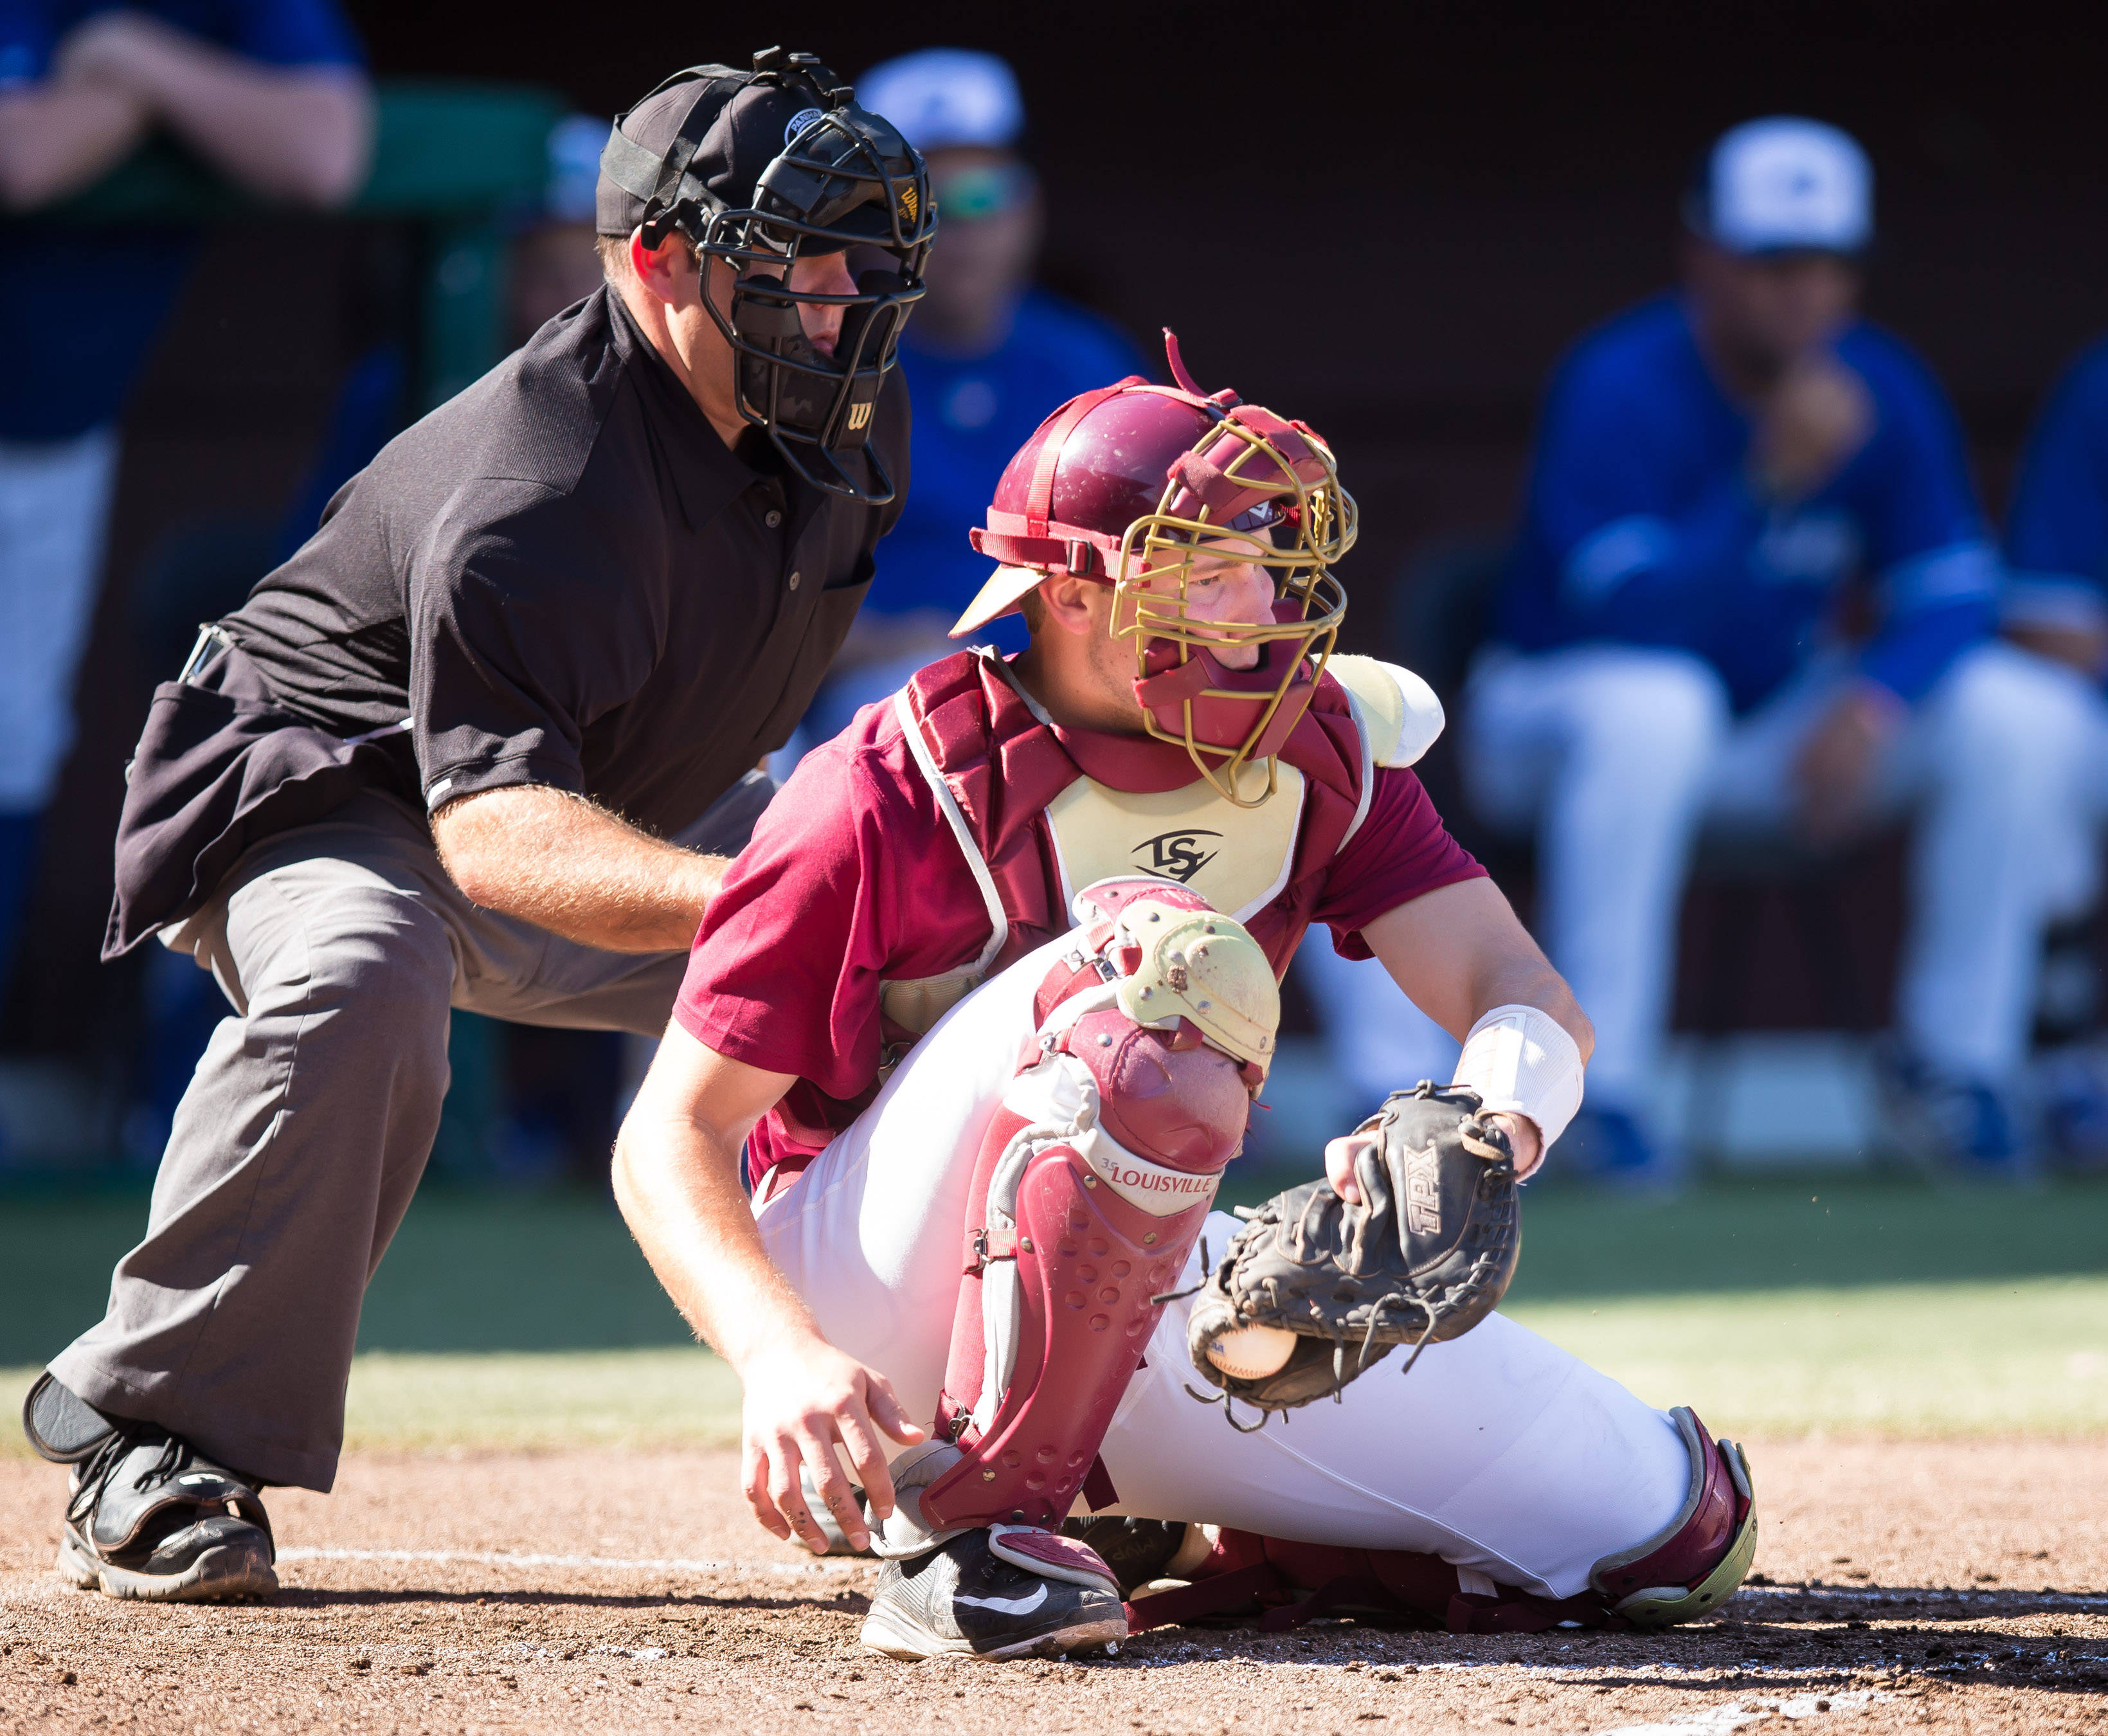 Florida State vs. Ontario Blue Jays